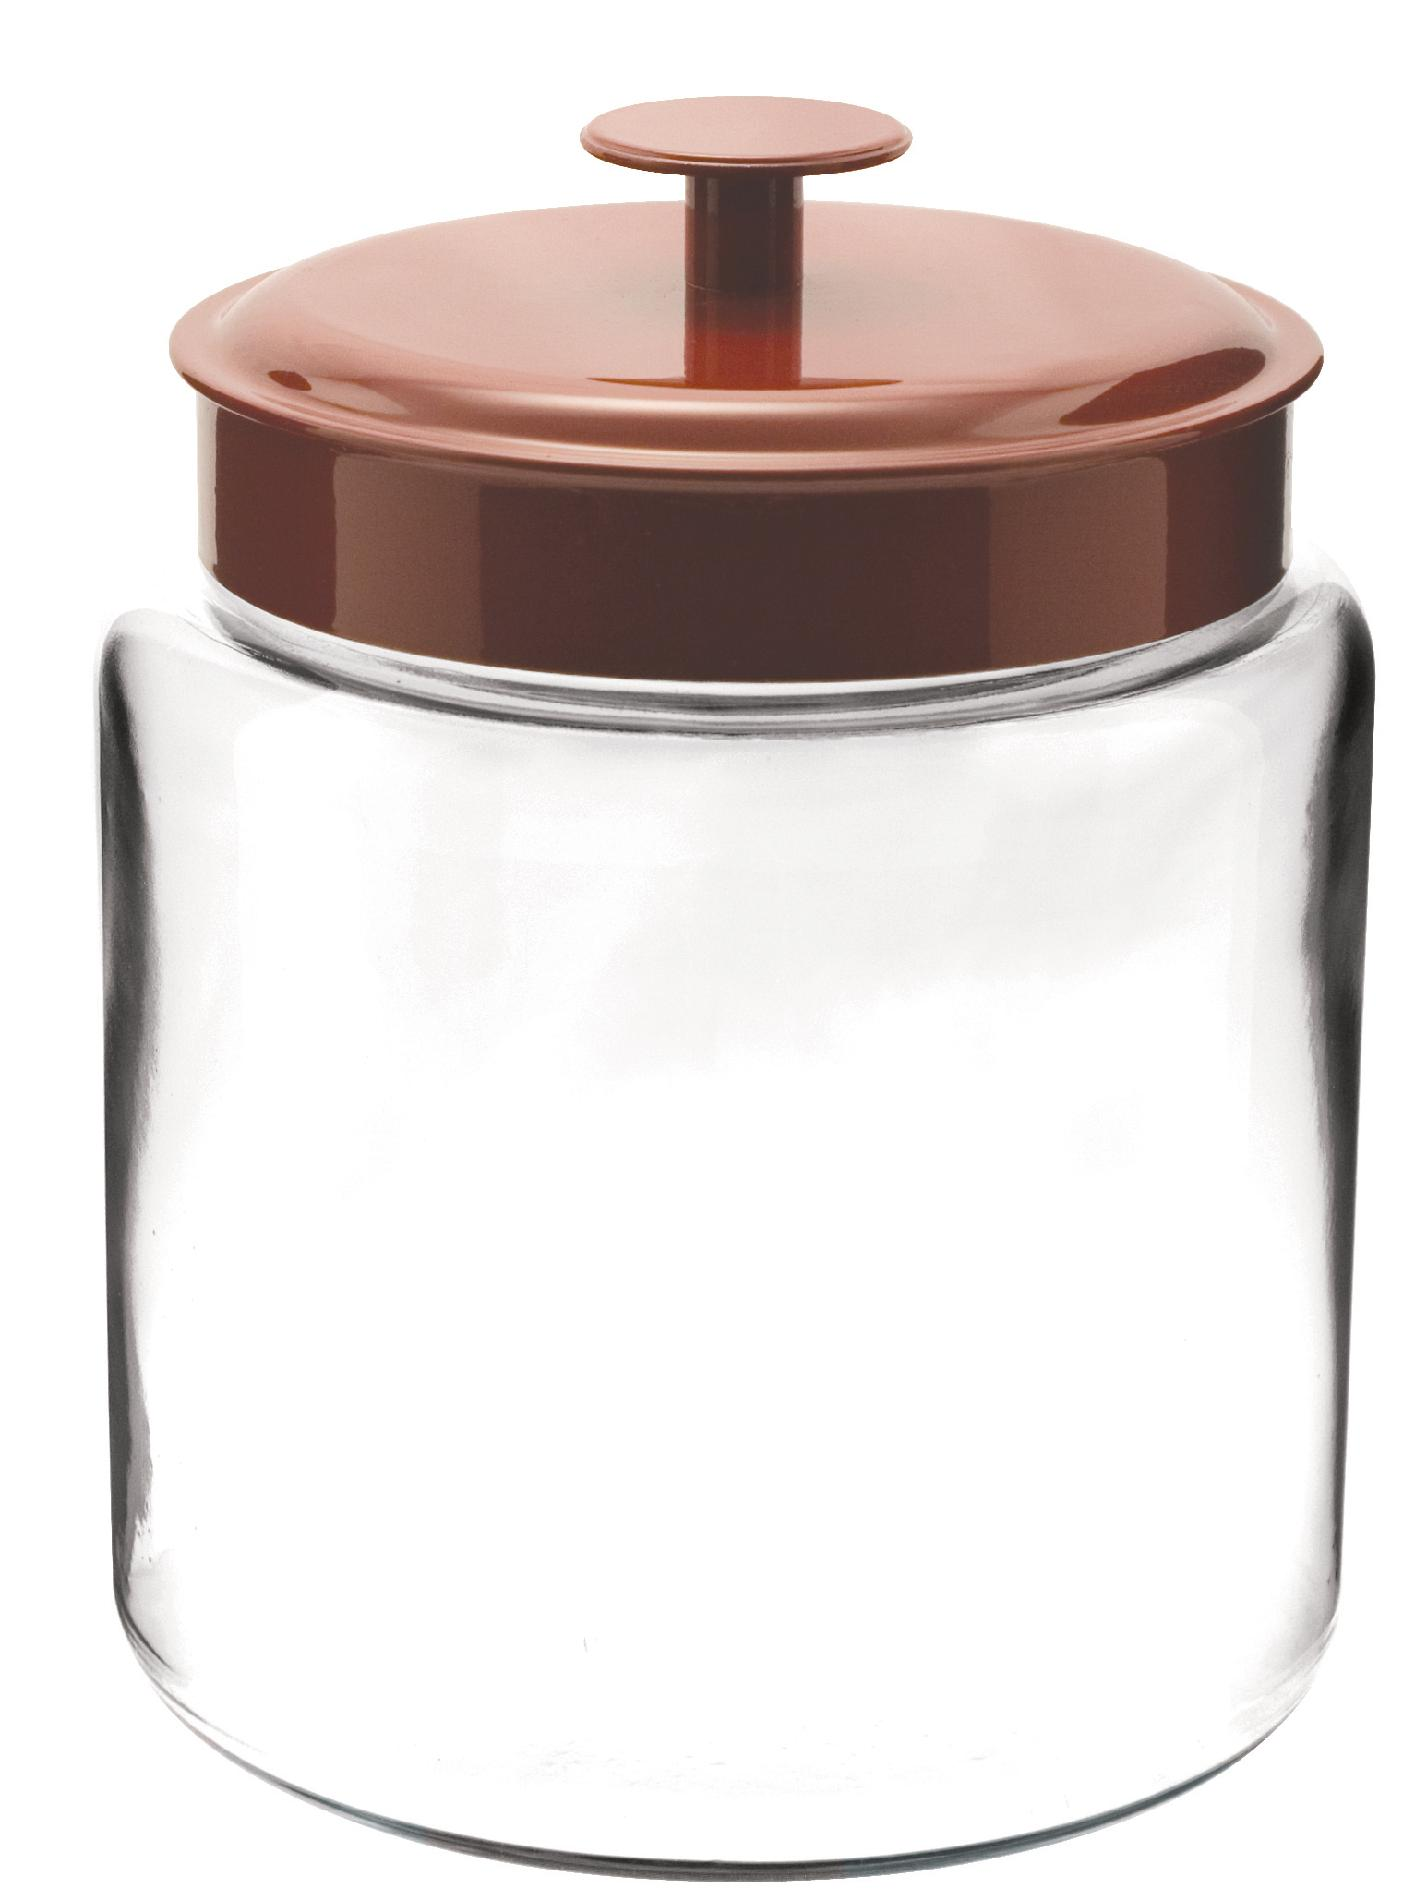 Anchor Hocking Montana Storage Glass Jar, 96-Ounce- Red Aluminum Lid PartNumber: 011W096516311001P KsnValue: 96516311 MfgPartNumber: 95583